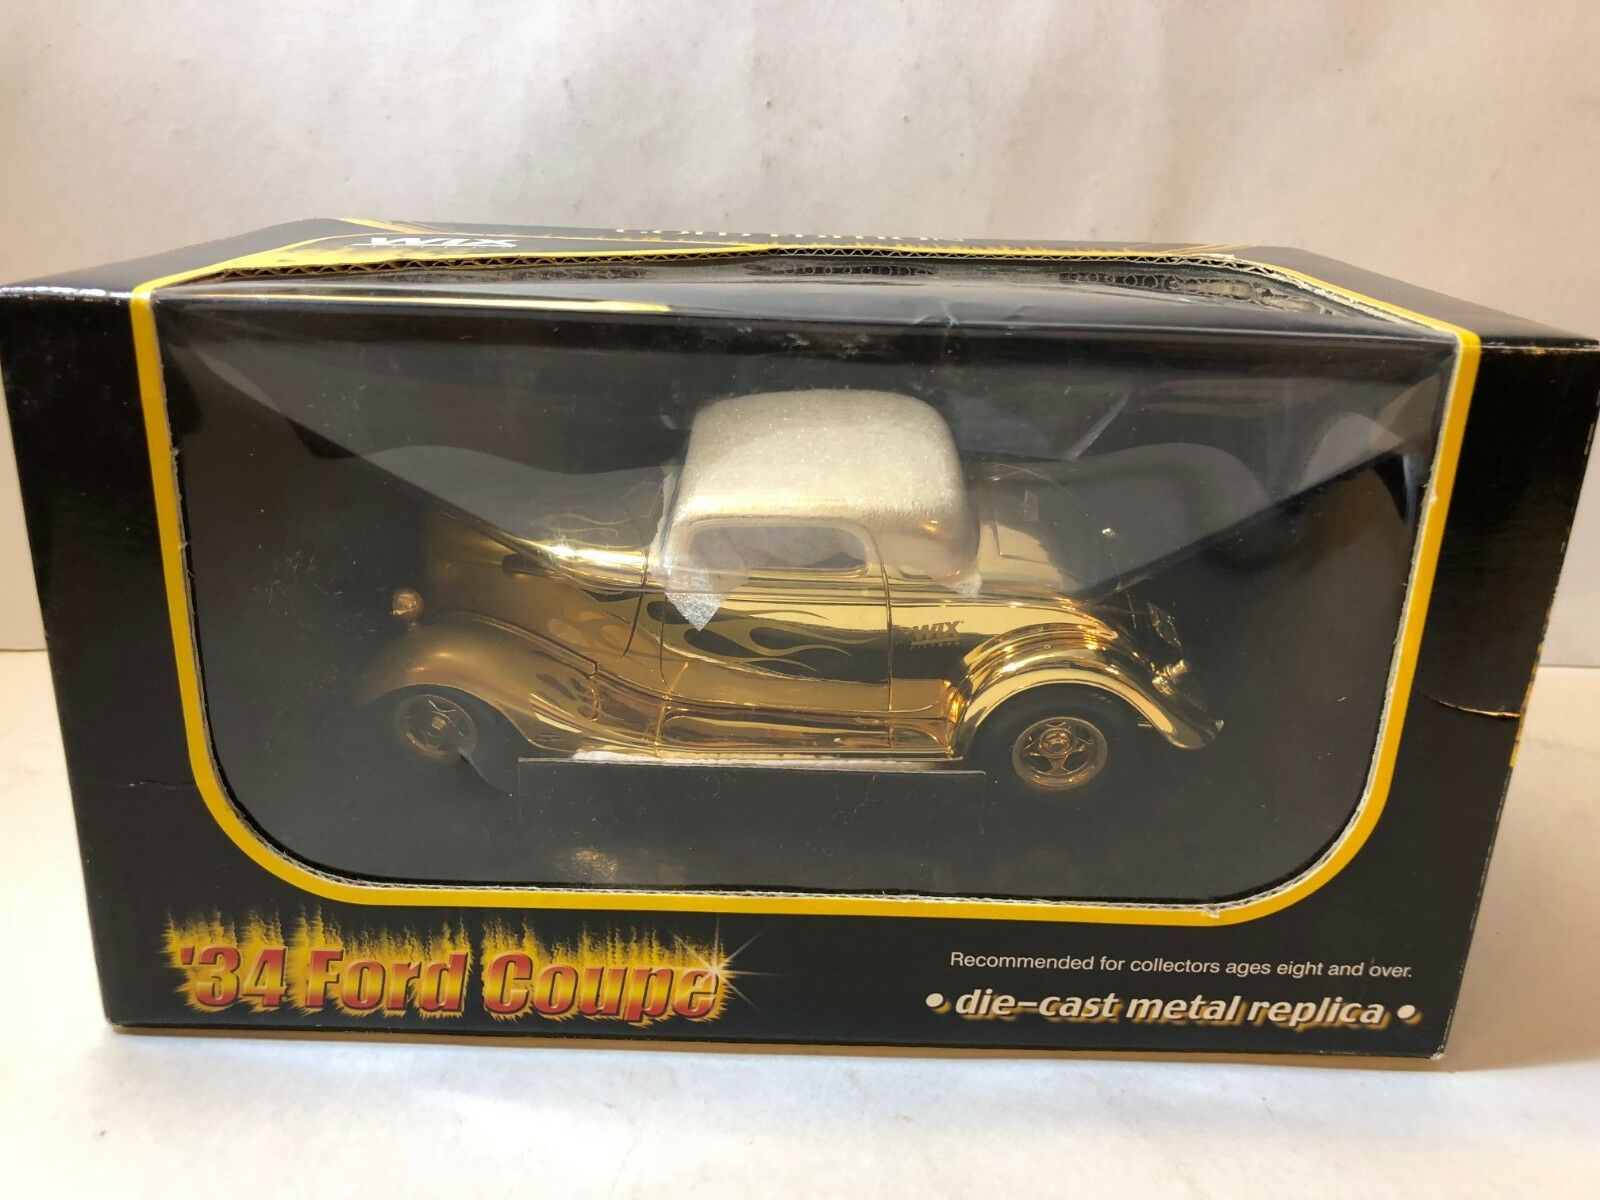 24 Karat gold Plating '34 Ford Coupe Wix Filters Die-Cast Metal Replica Car 1 25